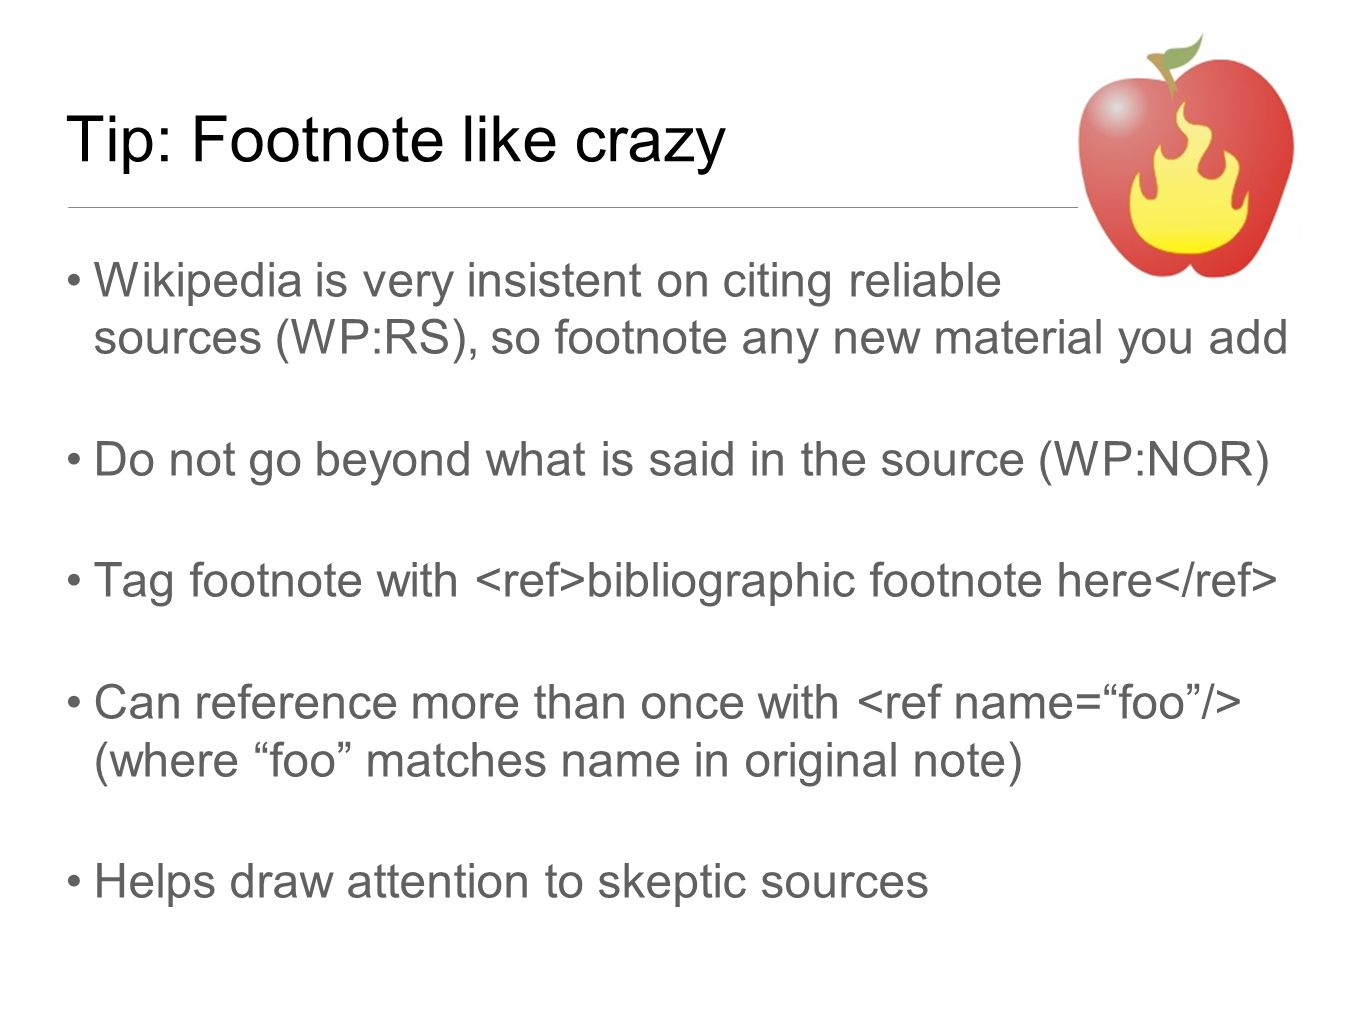 Tip: Footnote like crazy Wikipedia is very insistent on citing reliable sources (WP:RS), so footnote any new material you add Do not go beyond what is said in the source (WP:NOR) Tag footnote with bibliographic footnote here Can reference more than once with (where foo matches name in original note) Helps draw attention to skeptic sources